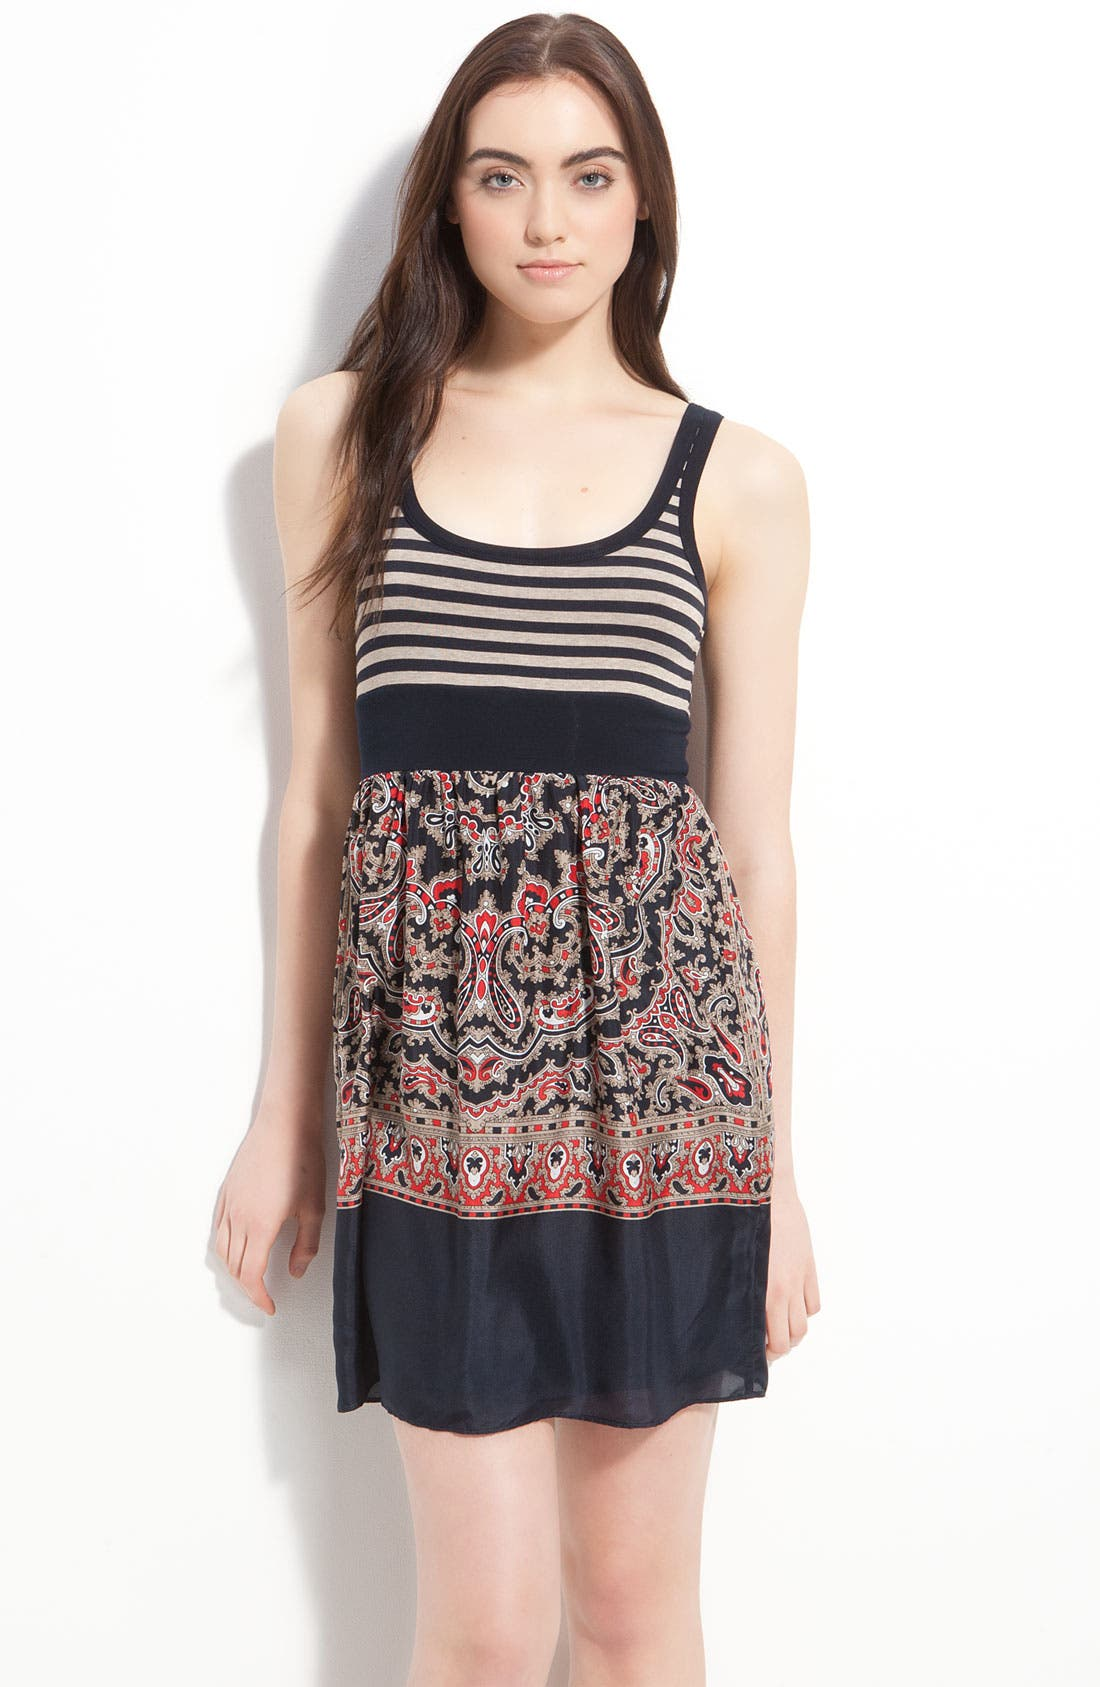 Alternate Image 1 Selected - Bailey 44 'Island Fever' Stripe & Scarf Print Tank Dress